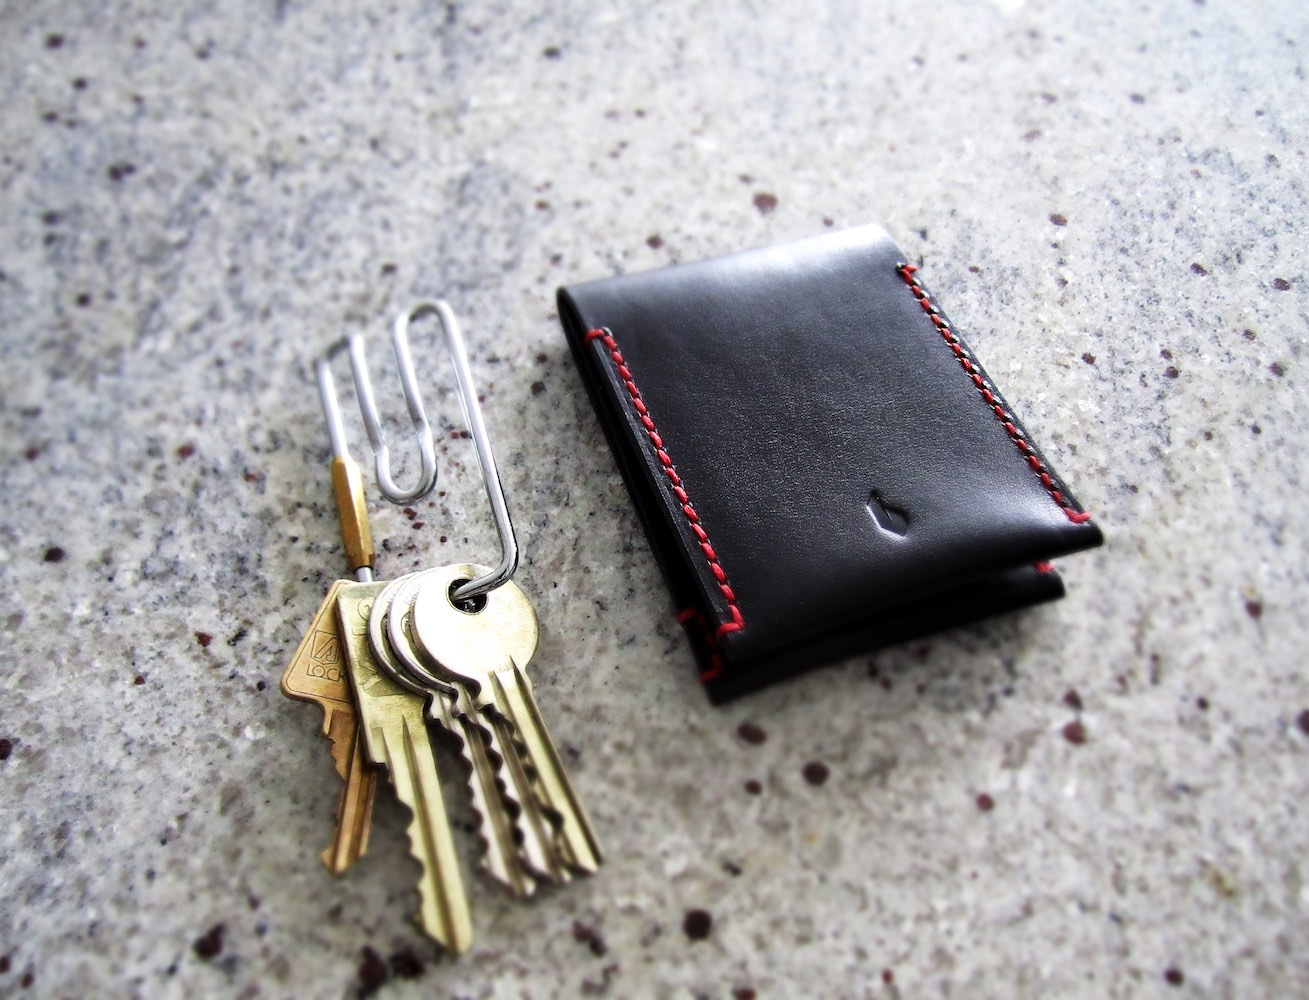 PAALM Minimalist Wallet – Available in Caramel and Dark Berry color